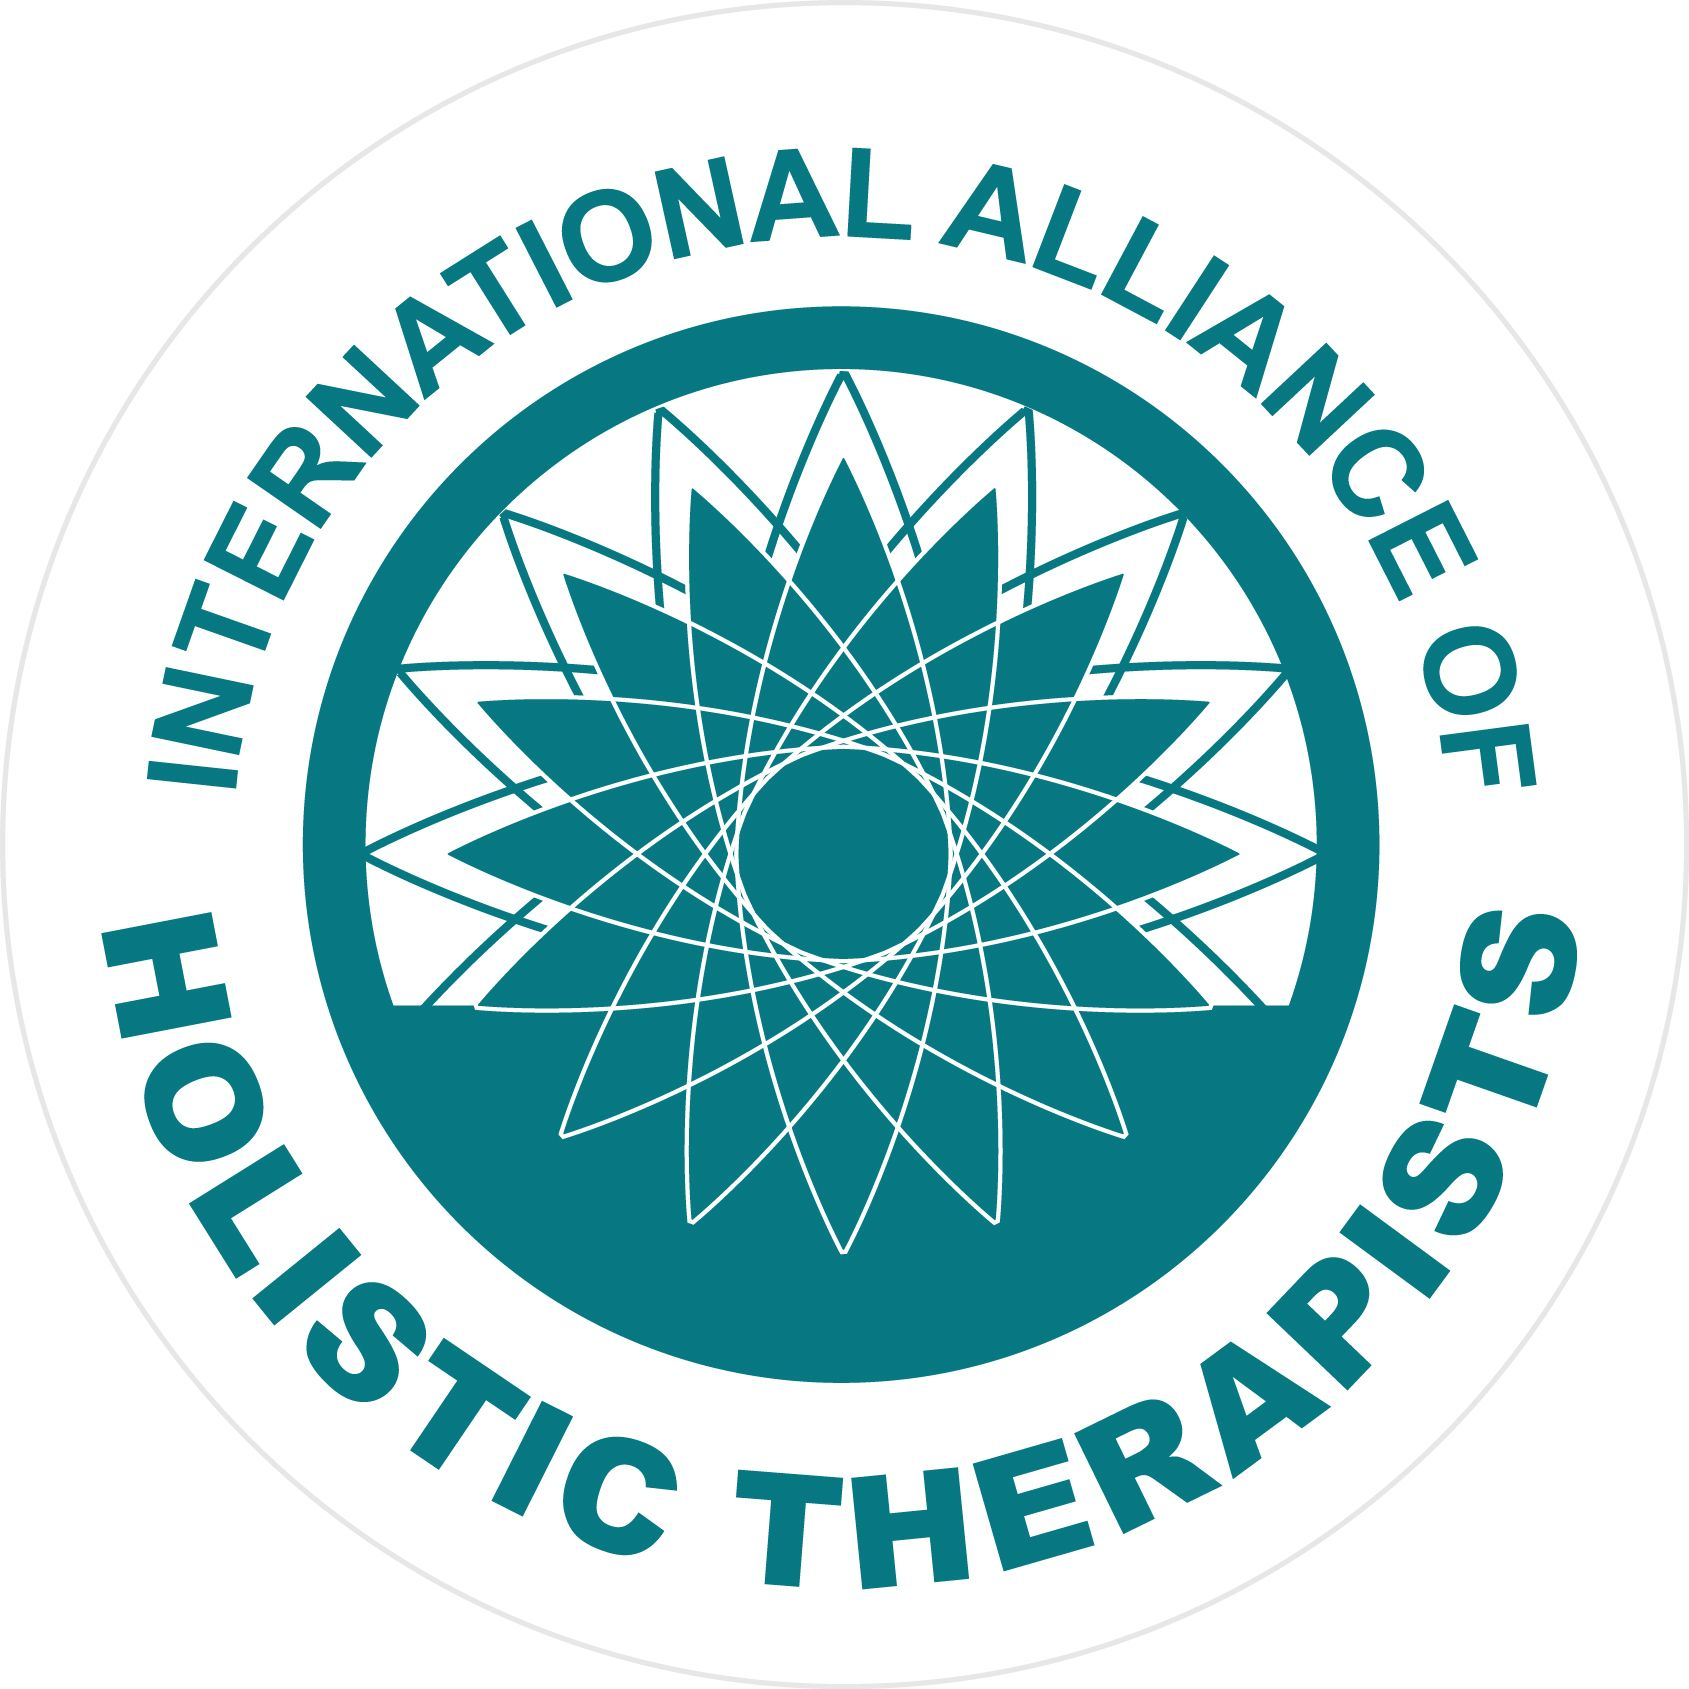 International%20Alliance%20of%20Holistic